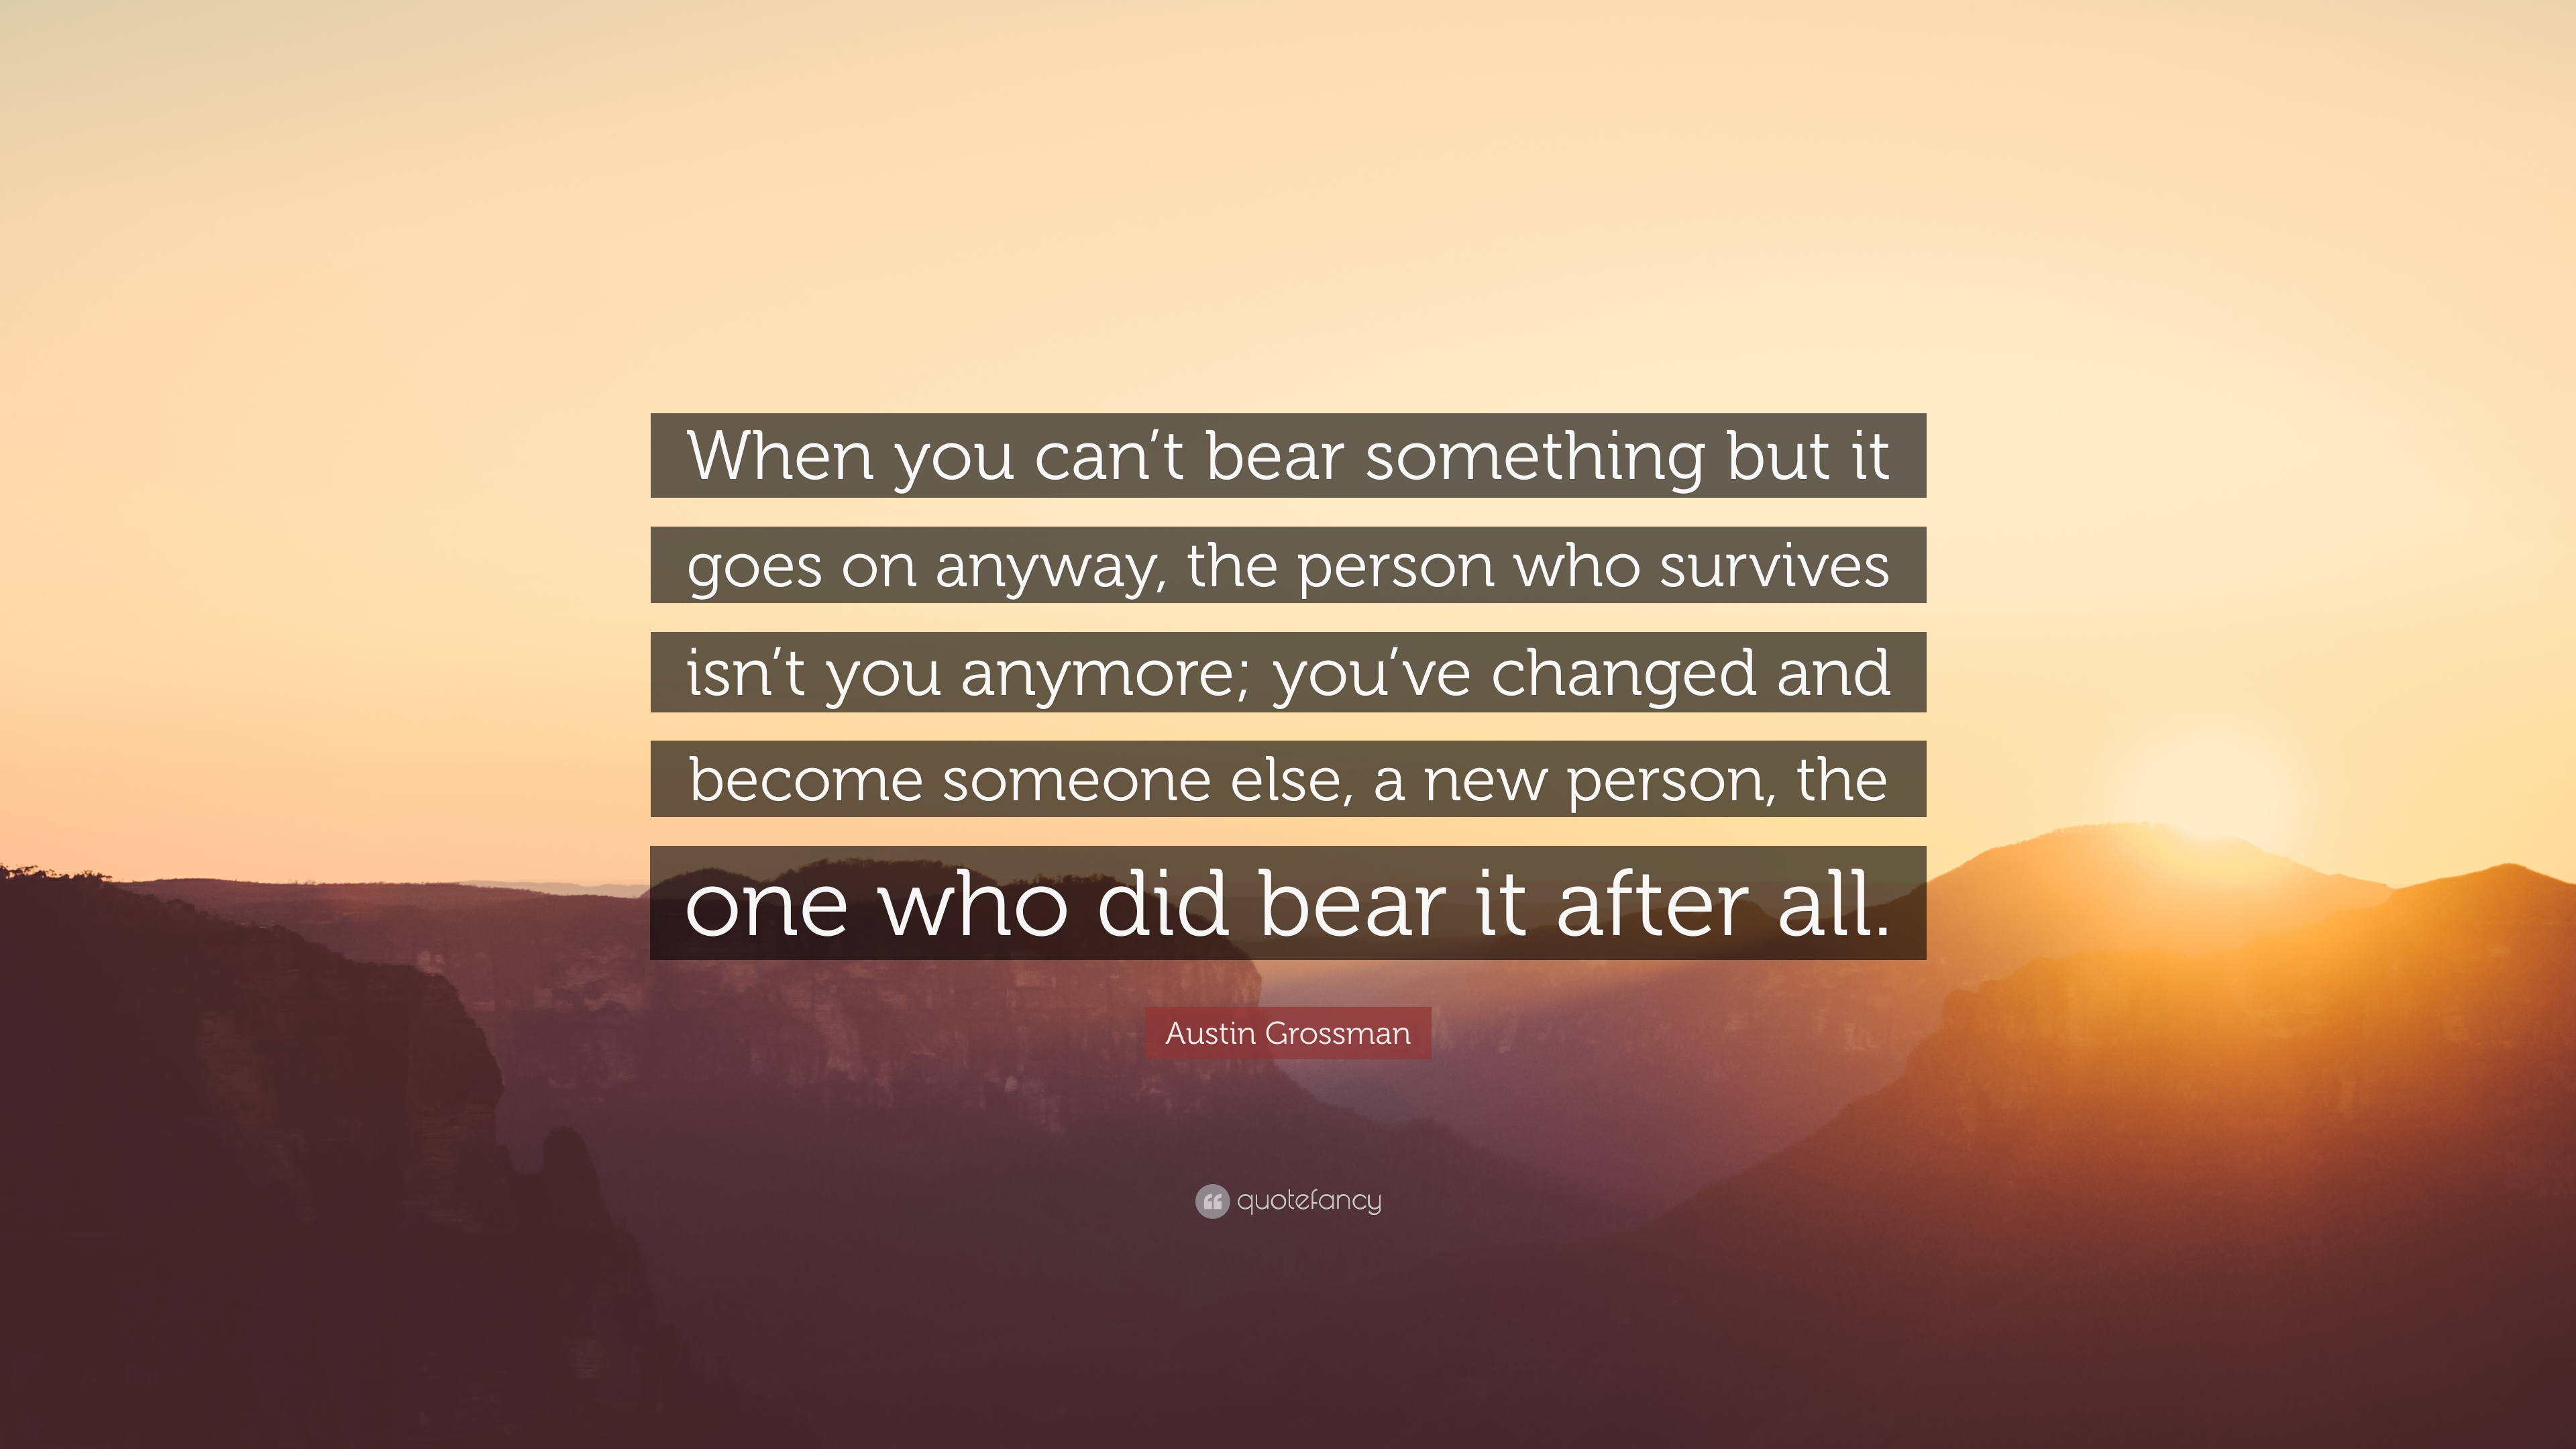 Good Austin Grossman Quote: U201cWhen You Canu0027t Bear Something But It Goes On